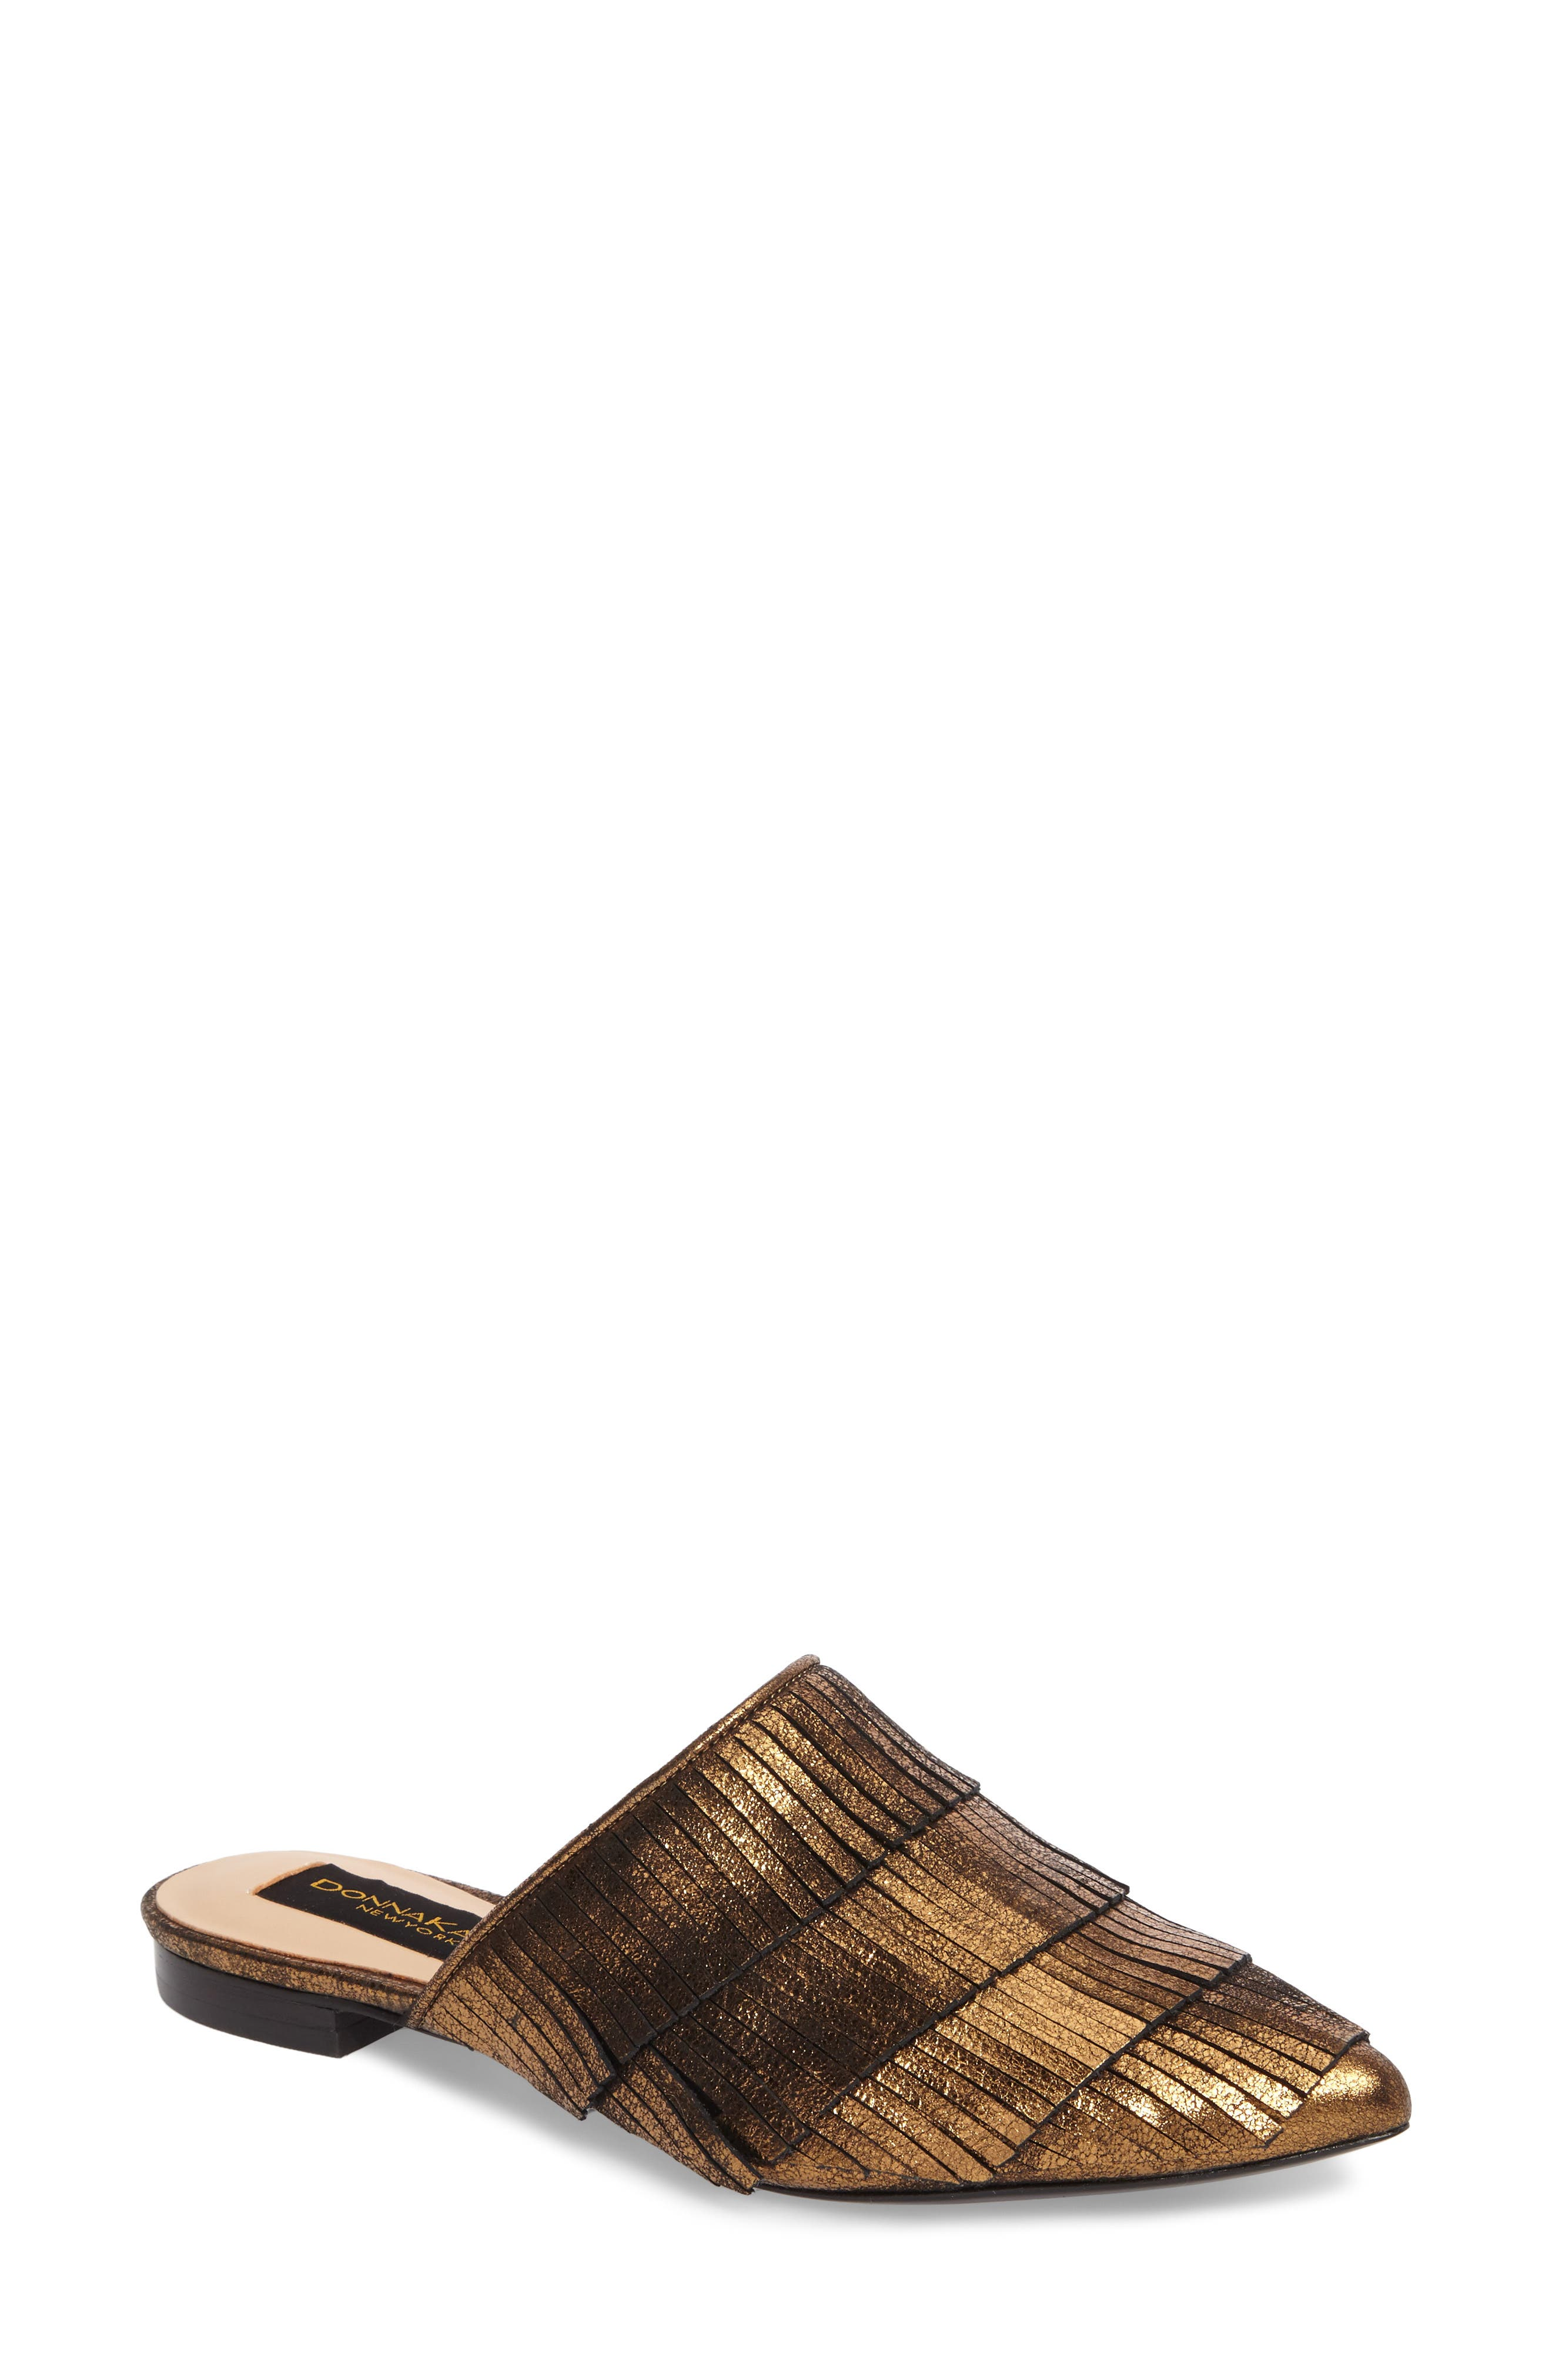 Donna Karan Paisley Fringe Mule,                             Main thumbnail 1, color,                             Brass Leather